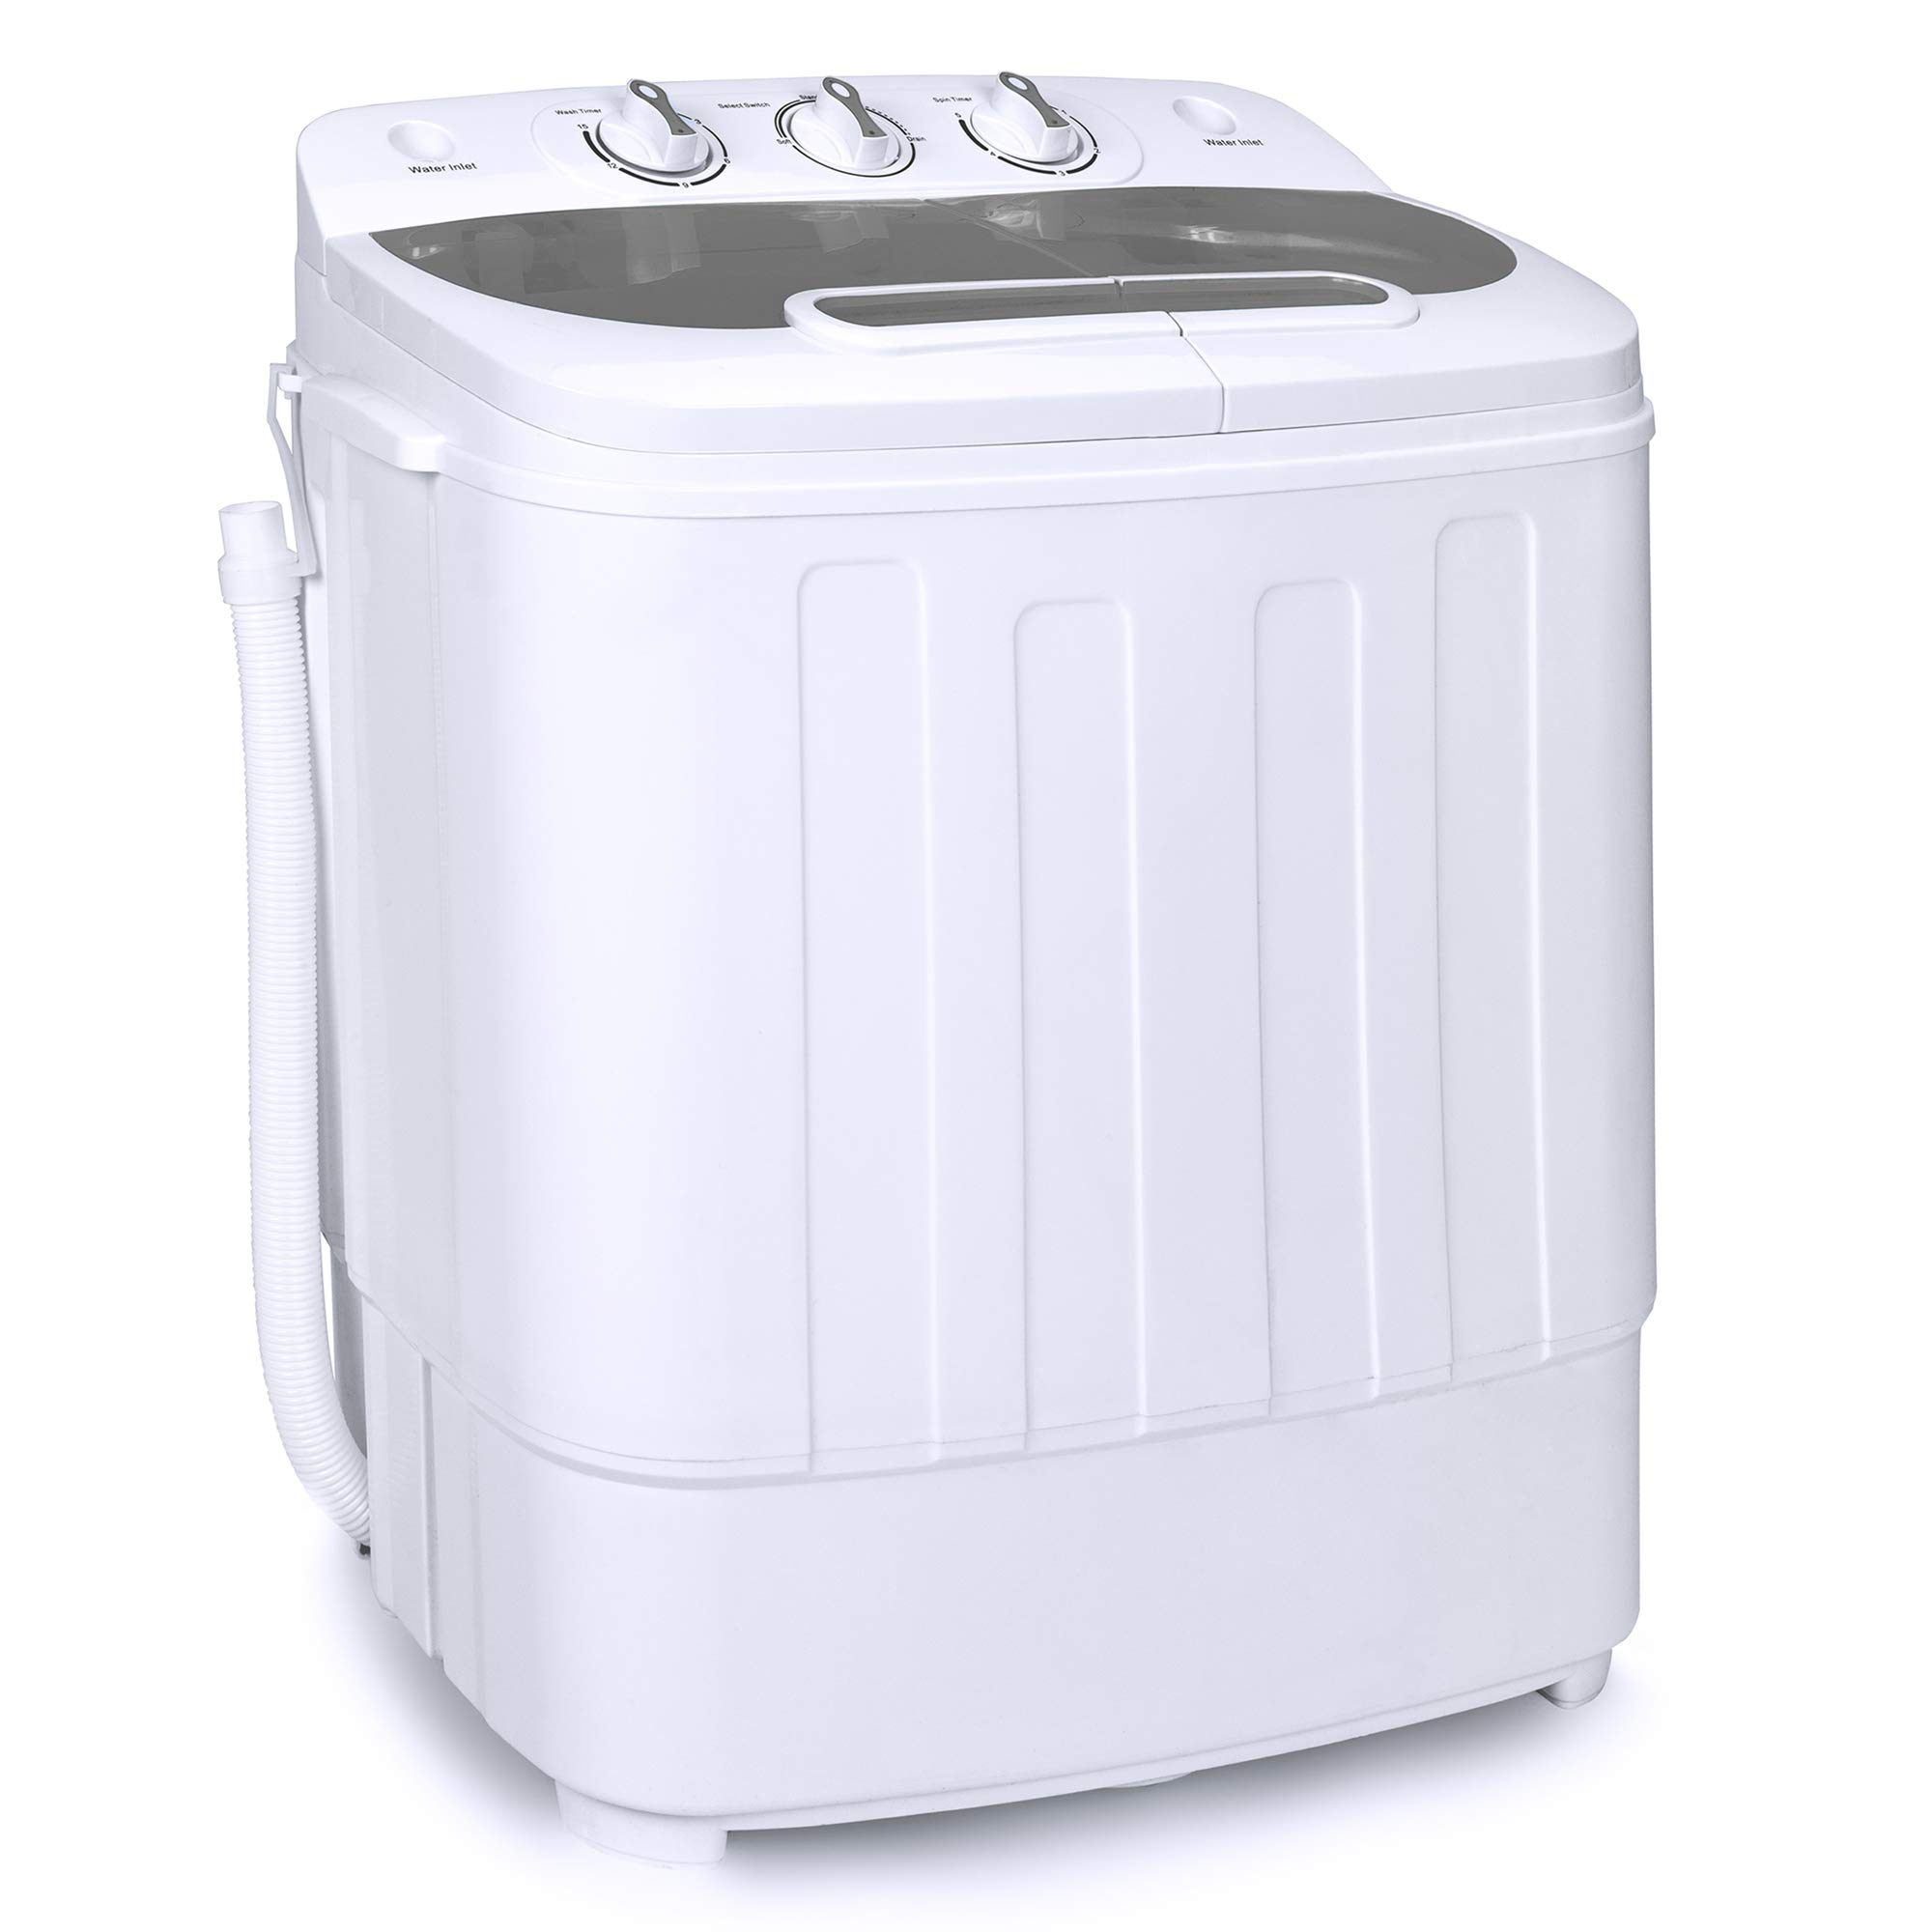 Best Choice Products Portable Compact Mini Twin Tub Laundry Washing Machine and Spin Cycle Dryer w/Hose, 13lbs Load Capacity, Built-In Drain - White/Gray by Best Choice Products